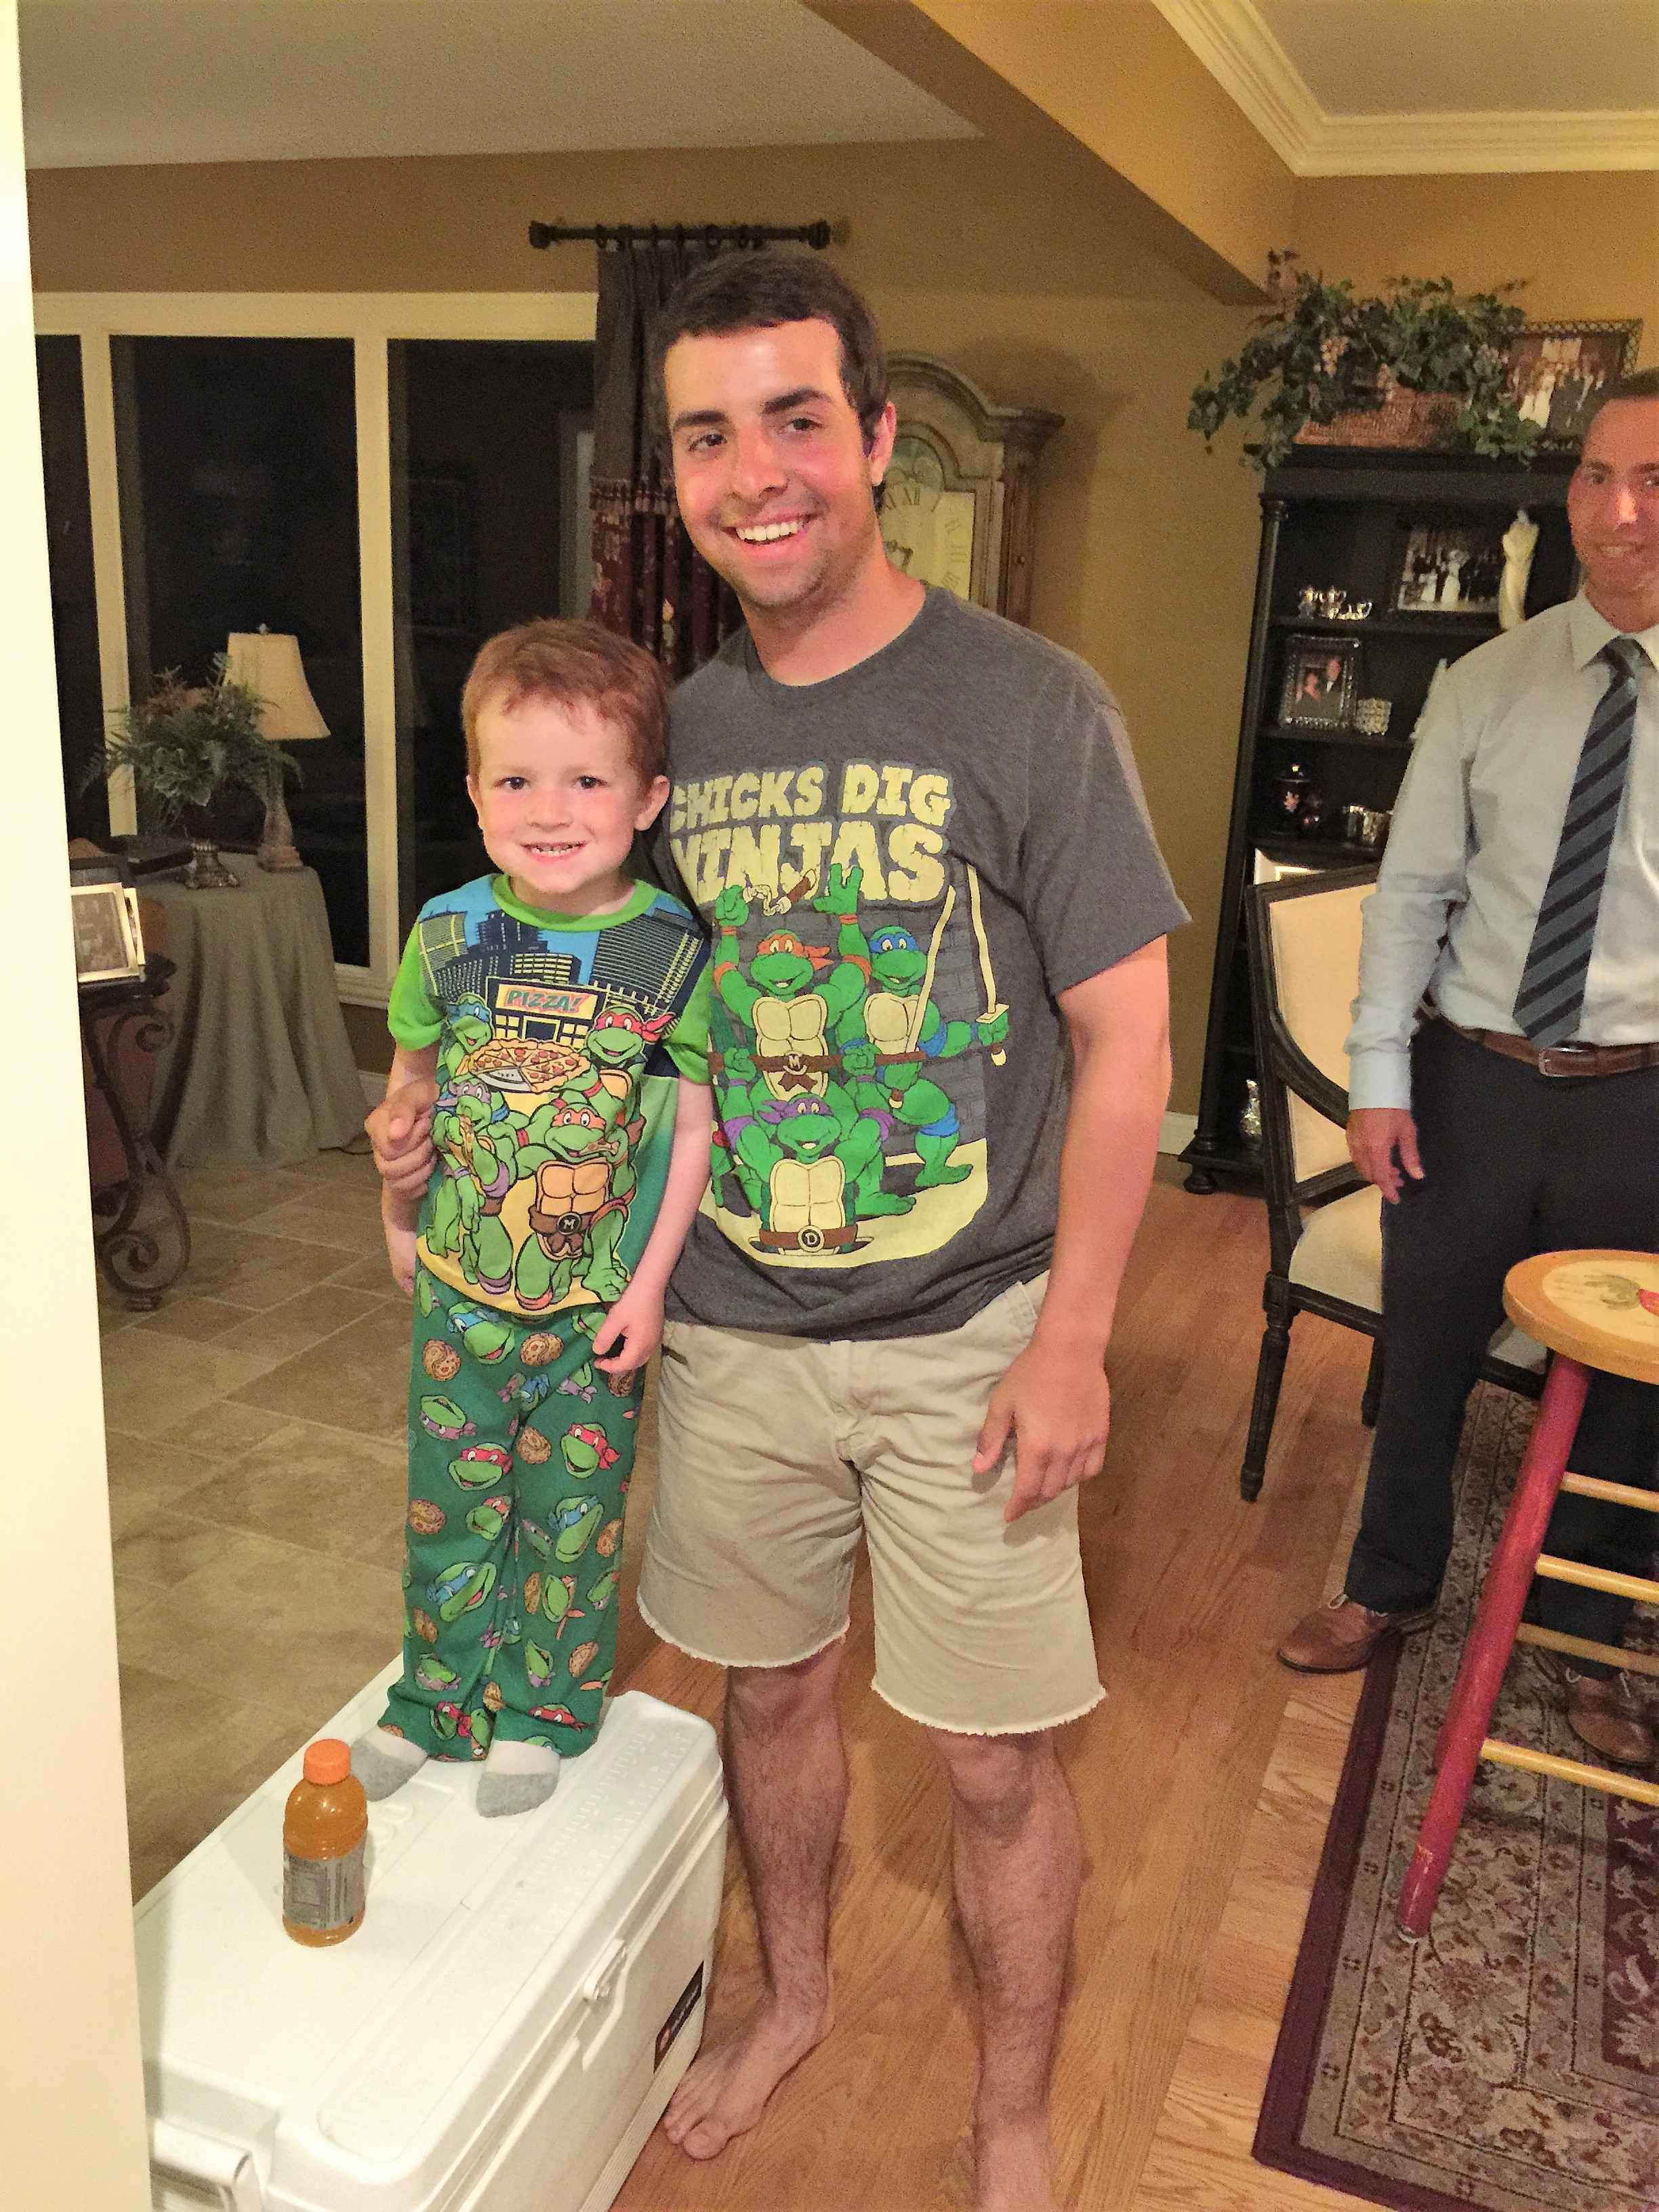 May 24, 2015. Nick with his cousin Jake Dunn. Nick loved hanging out with him.